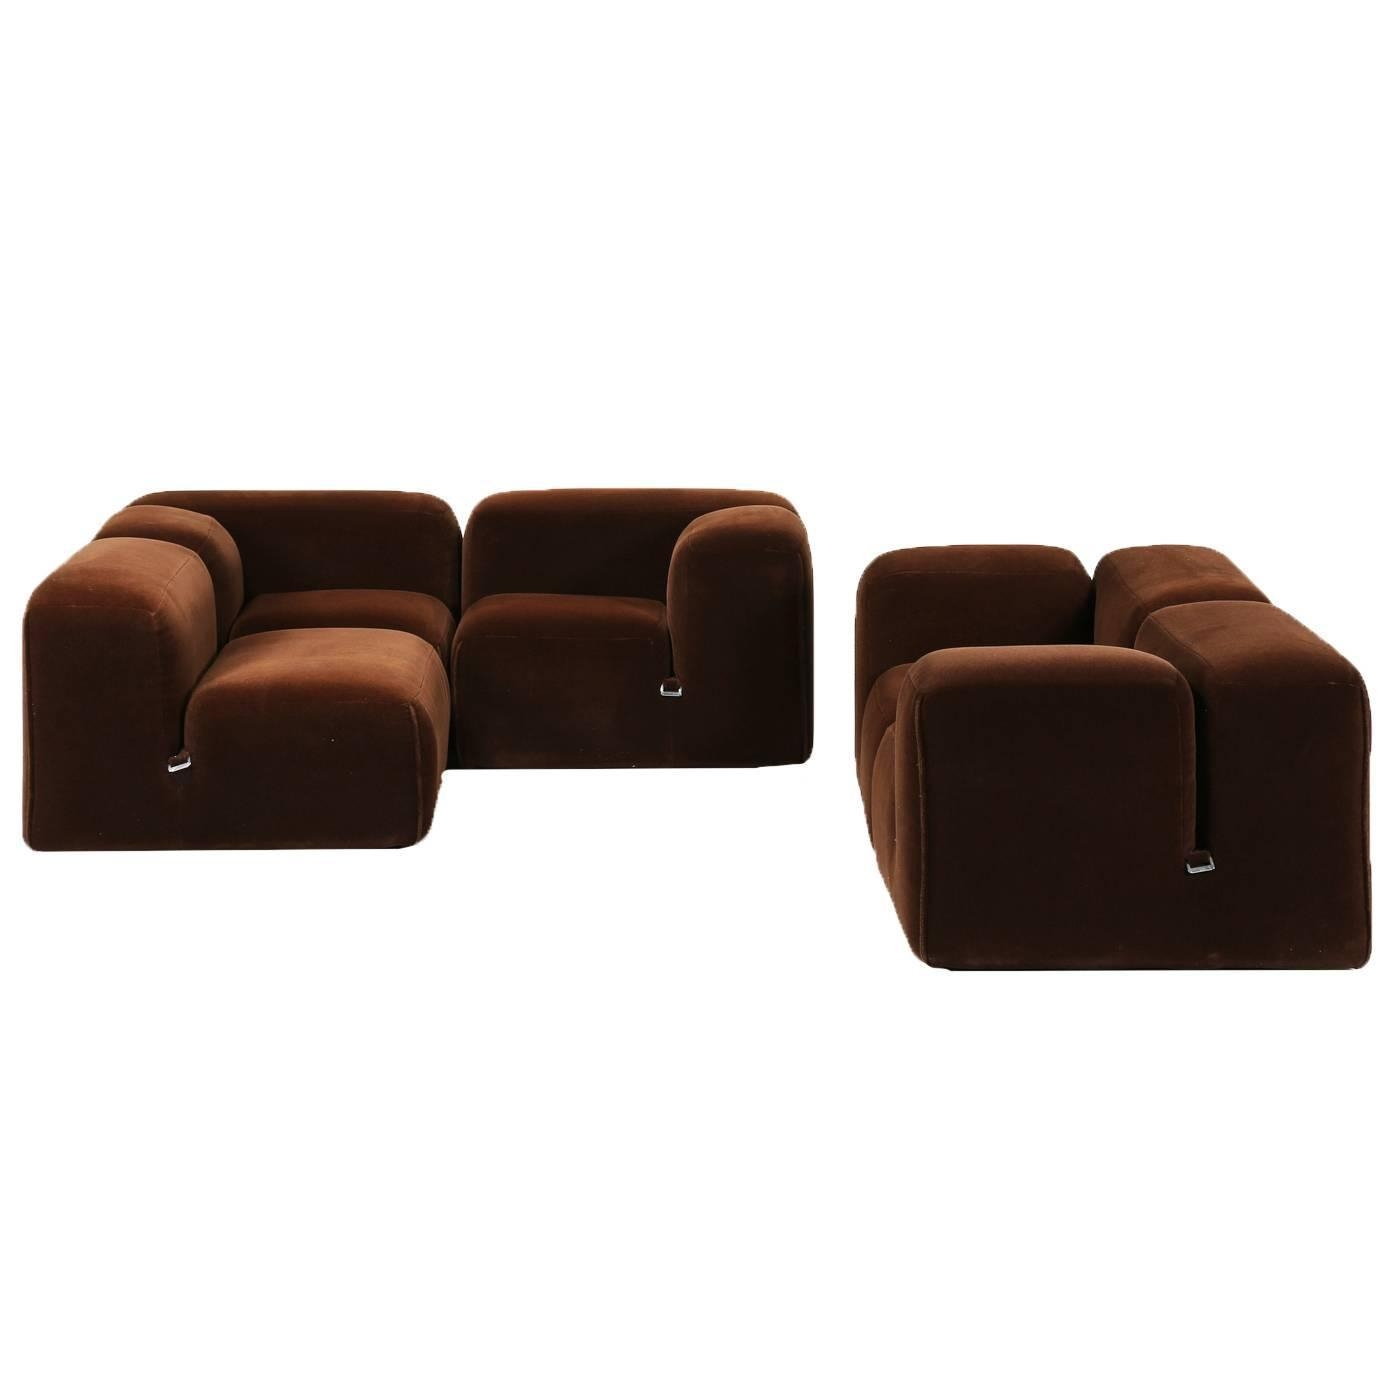 "Mario Bellini, Dark Brown Velvet ""le Mura"" Sofa Range, Cassina Spa Regarding Bellini Sofas (Image 11 of 20)"